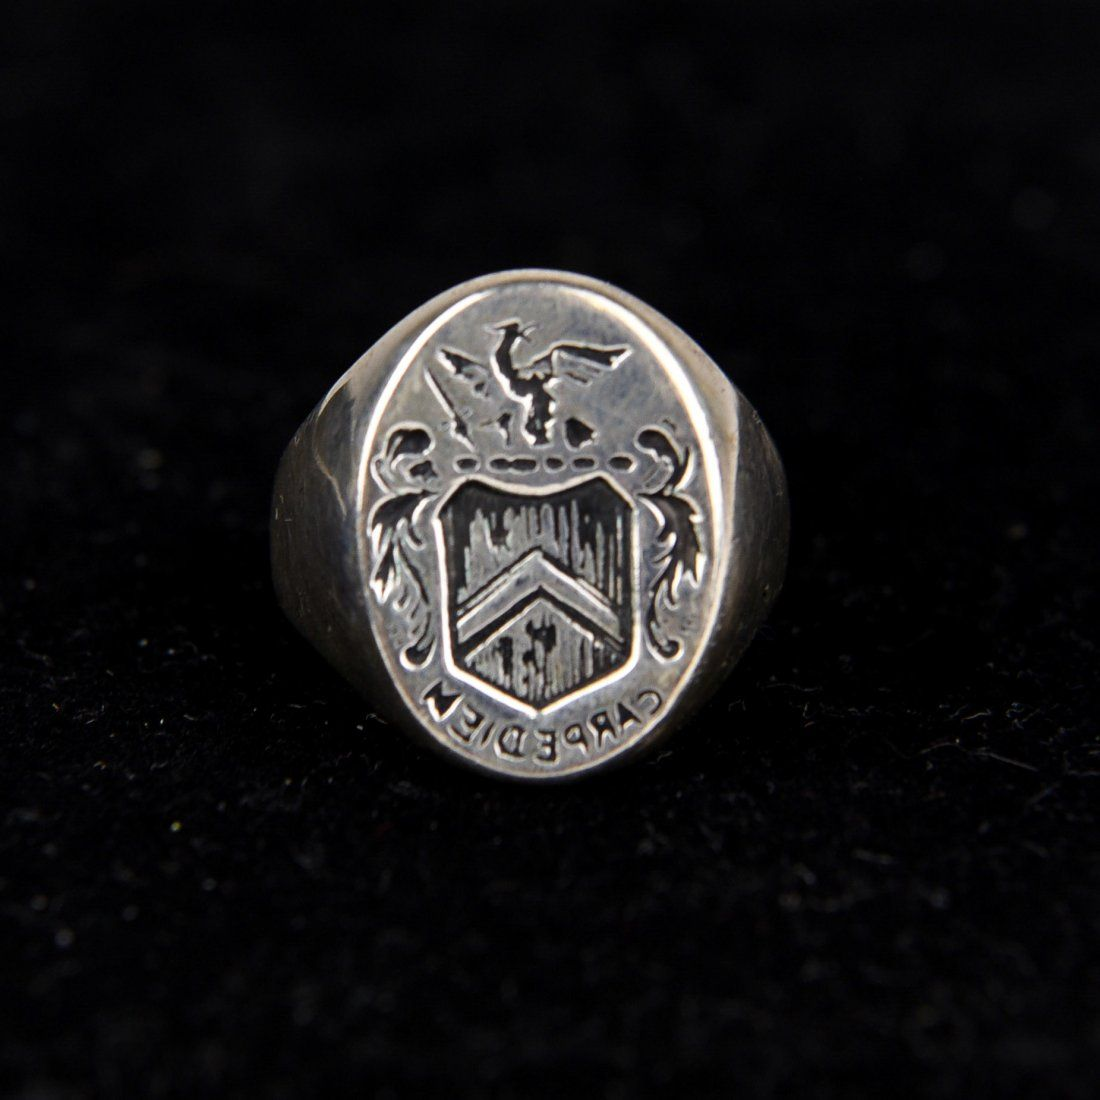 SILVER SIGNET CREST RING